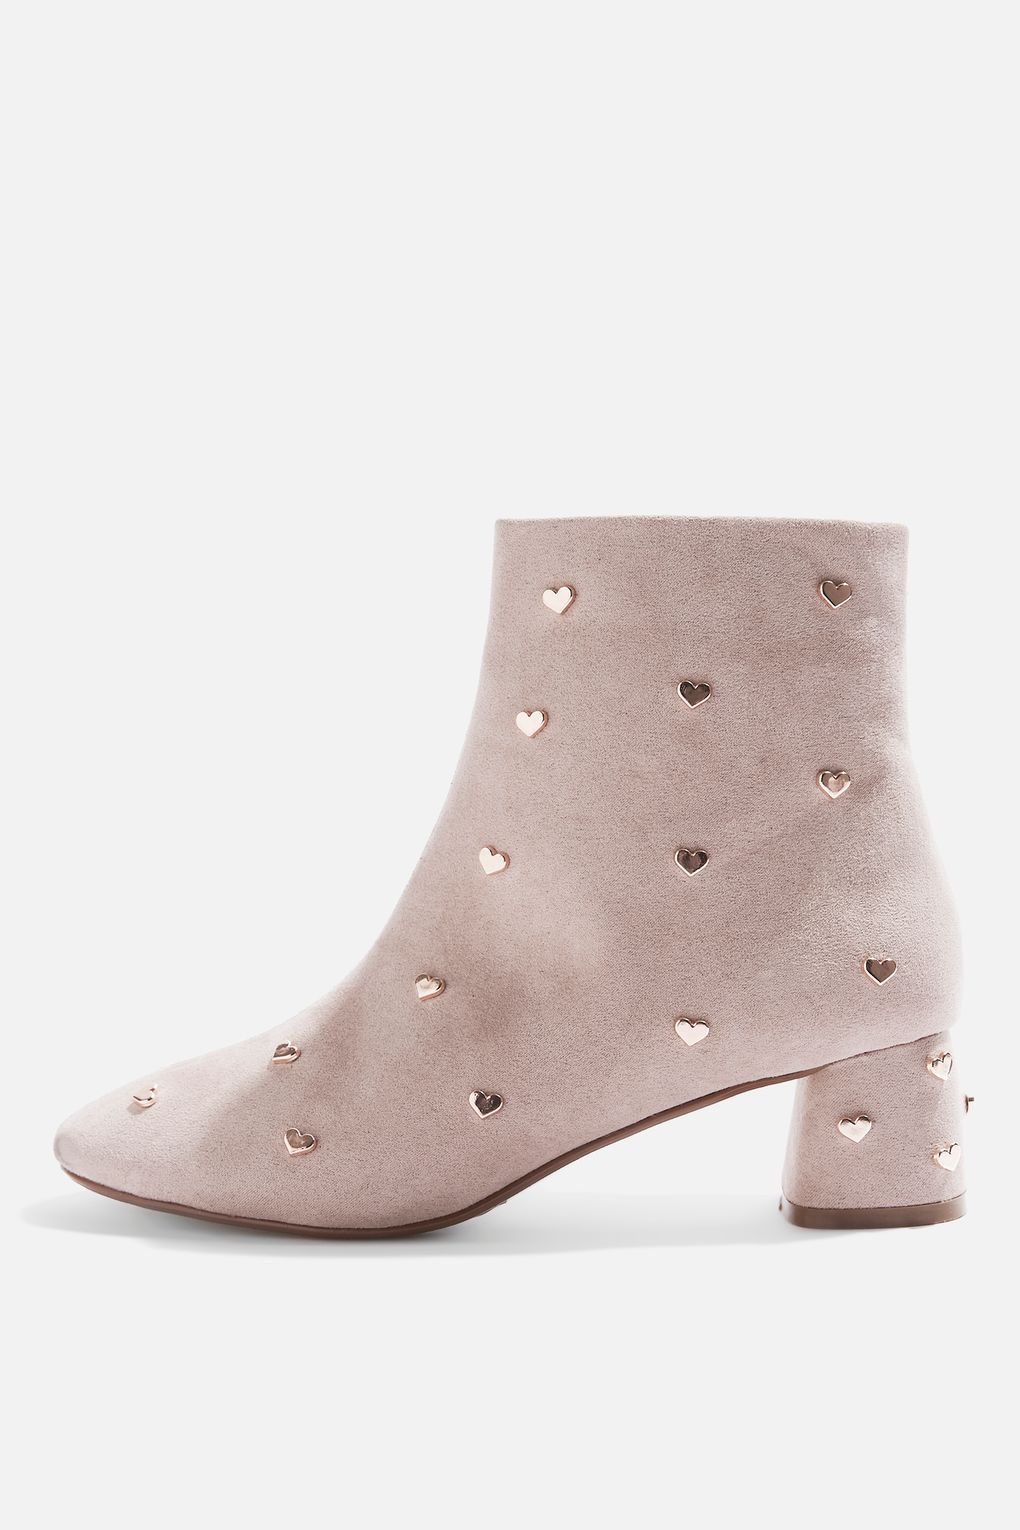 86745267d0cec6 BEE Heart Stud Angle Boots